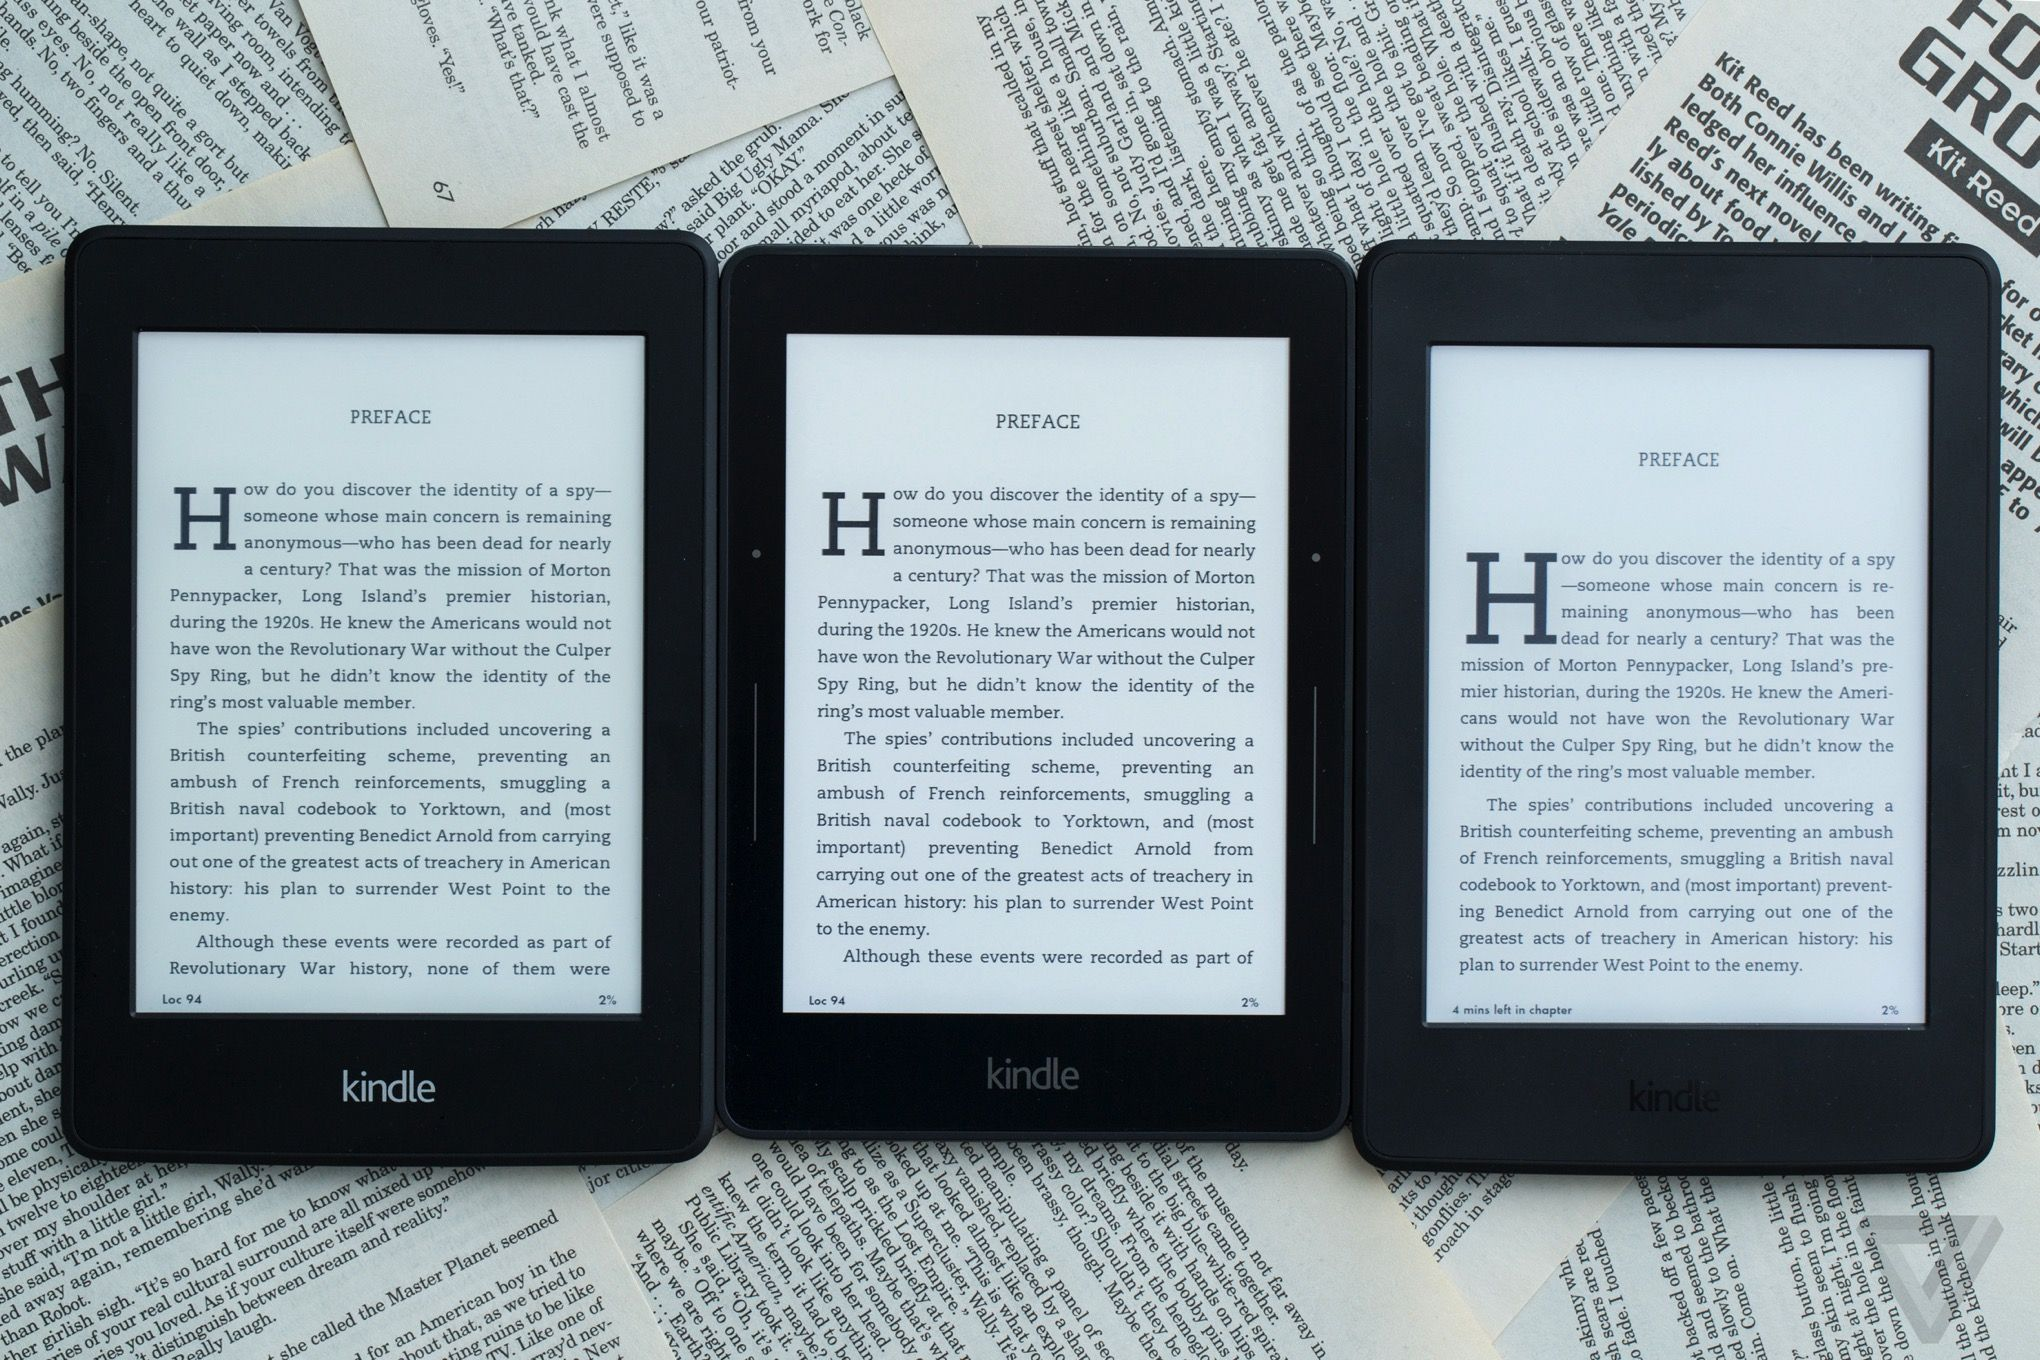 Kindle paperwhite scontato su amazon saldi su internet